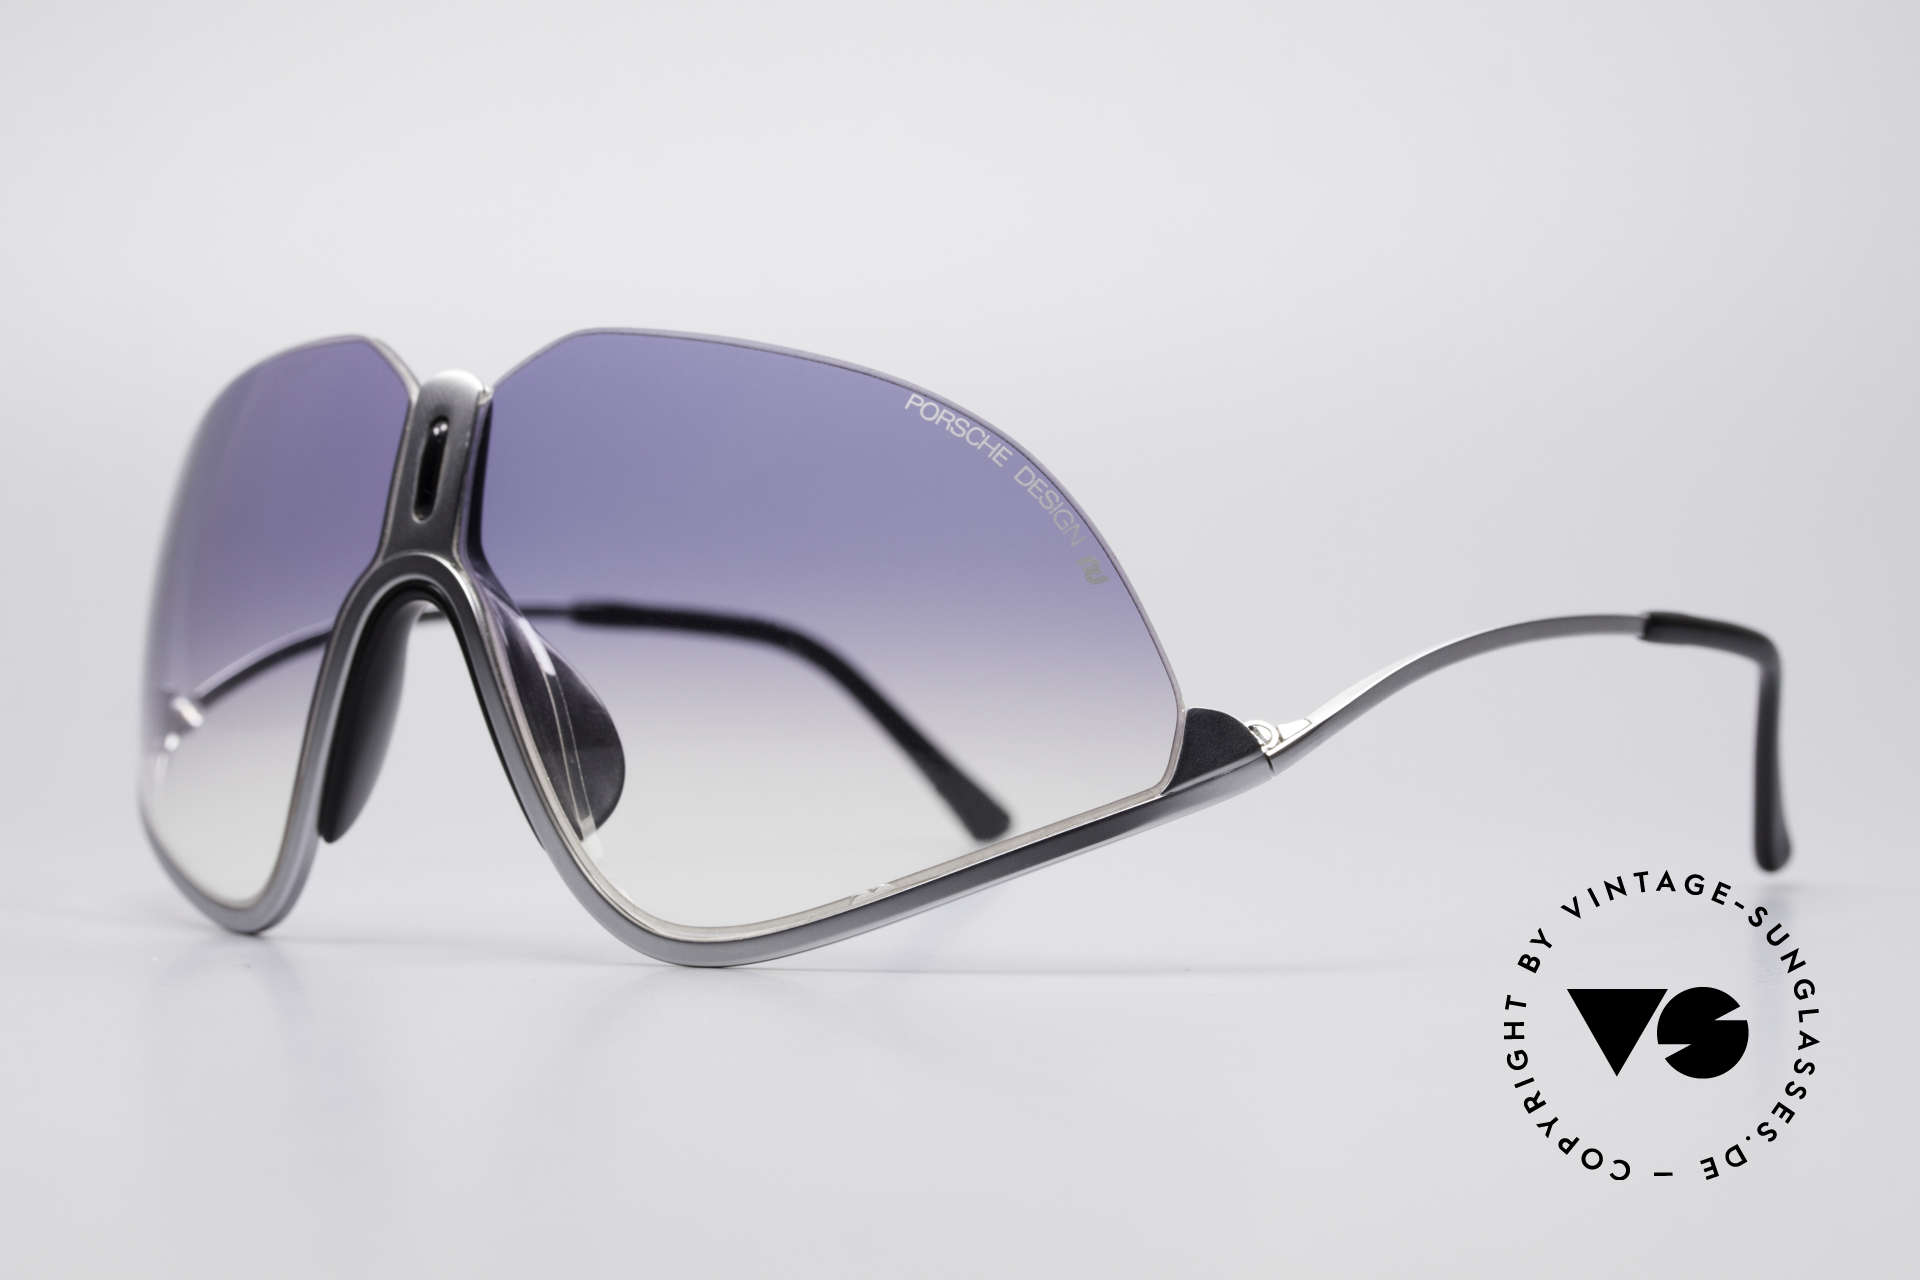 Porsche 5630 Designer Sports Shades 90's, upper frame edge without boundary (see the skyline), Made for Men